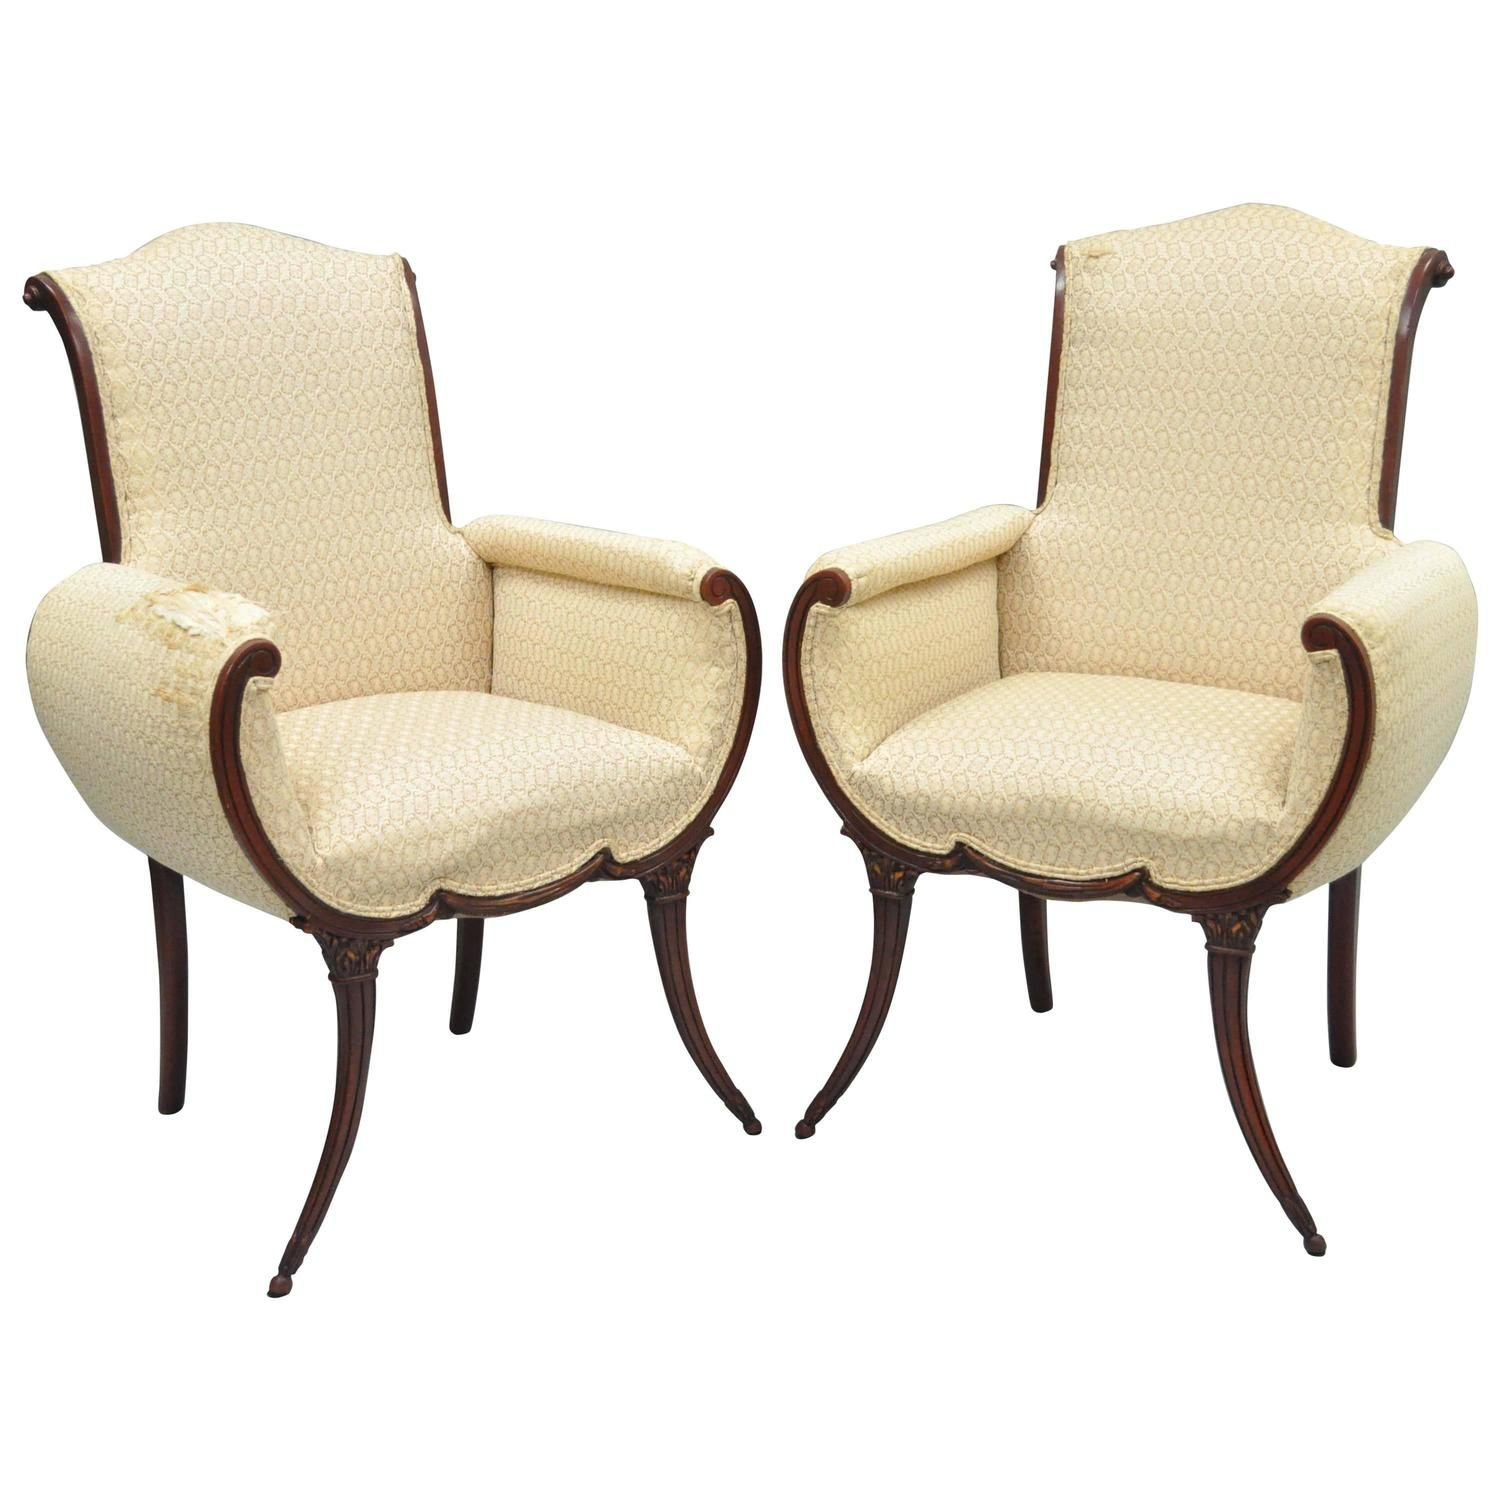 Captivating Pair Of Hollywood Regency Mahogany Saber Leg Fireside Chairs Attr Grosfeld  House